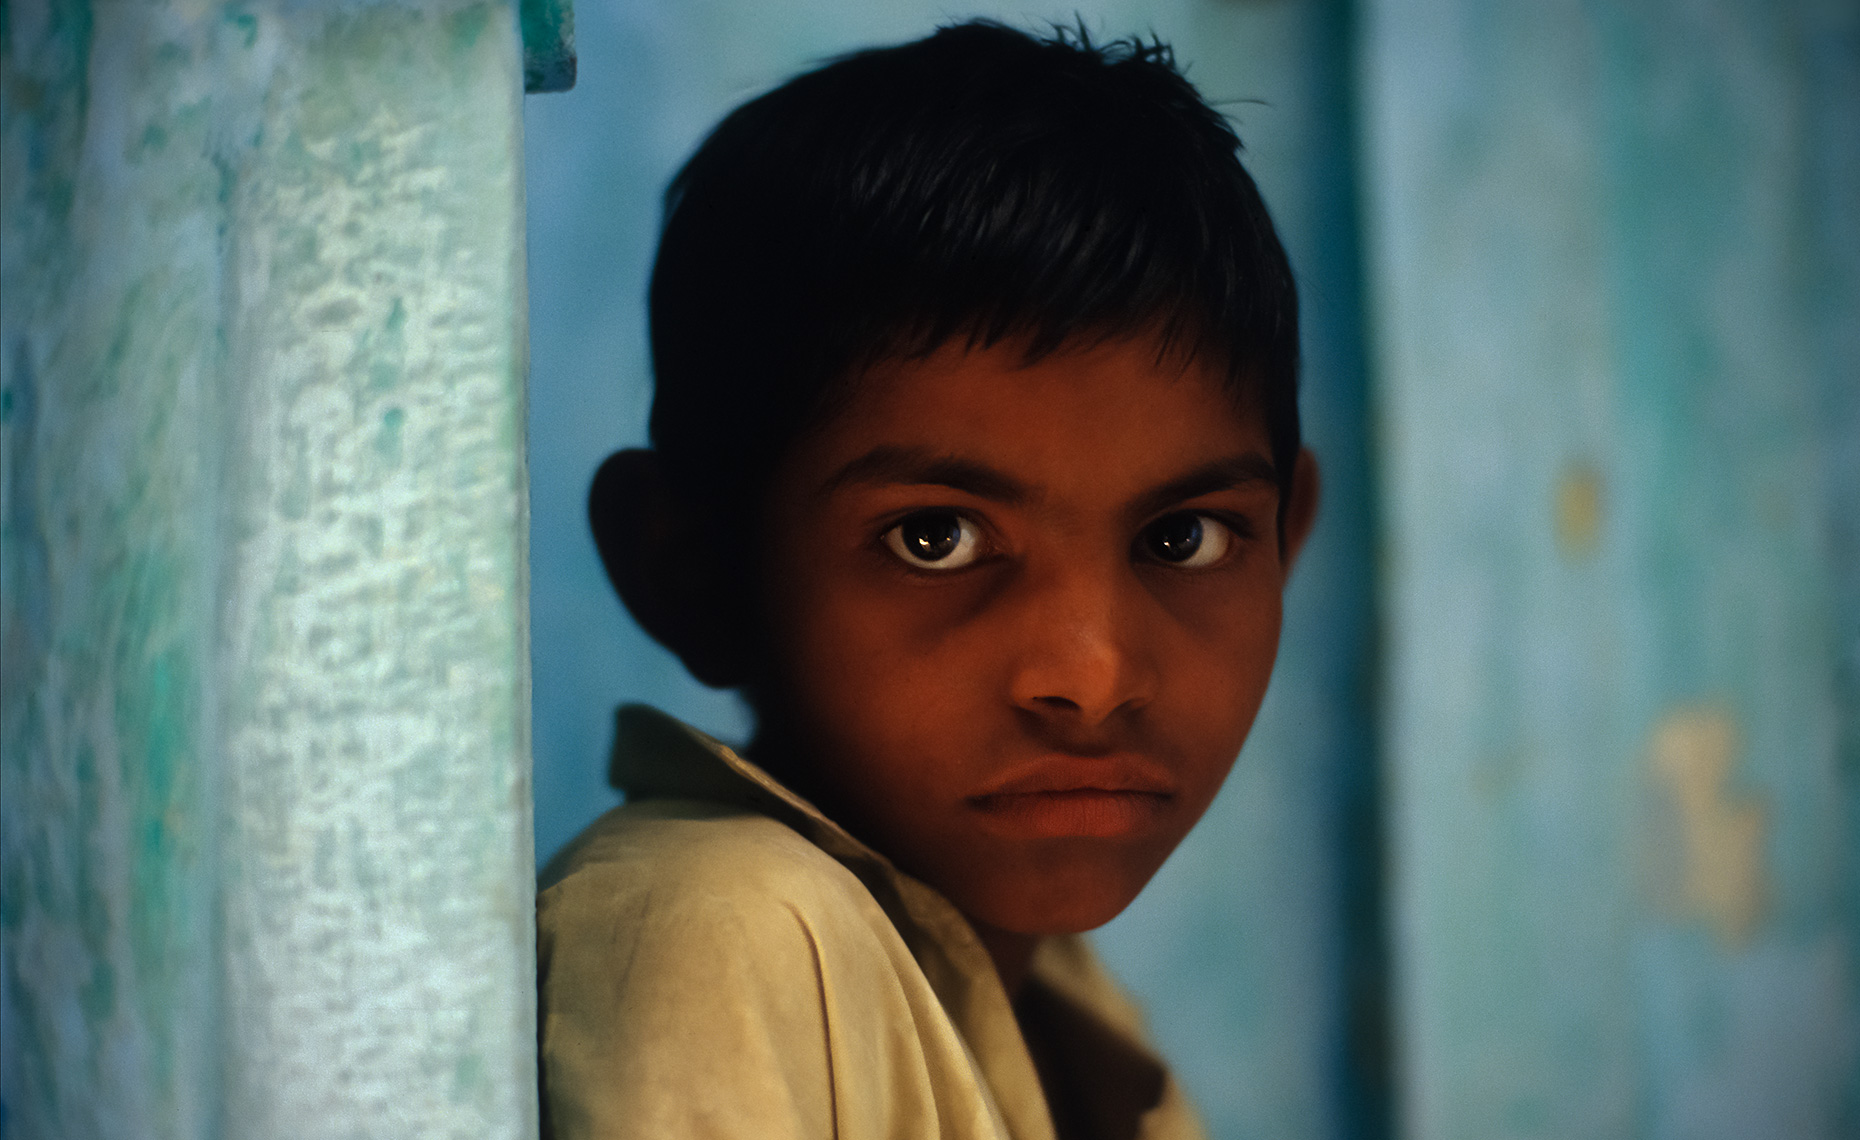 KId In Gokul, India